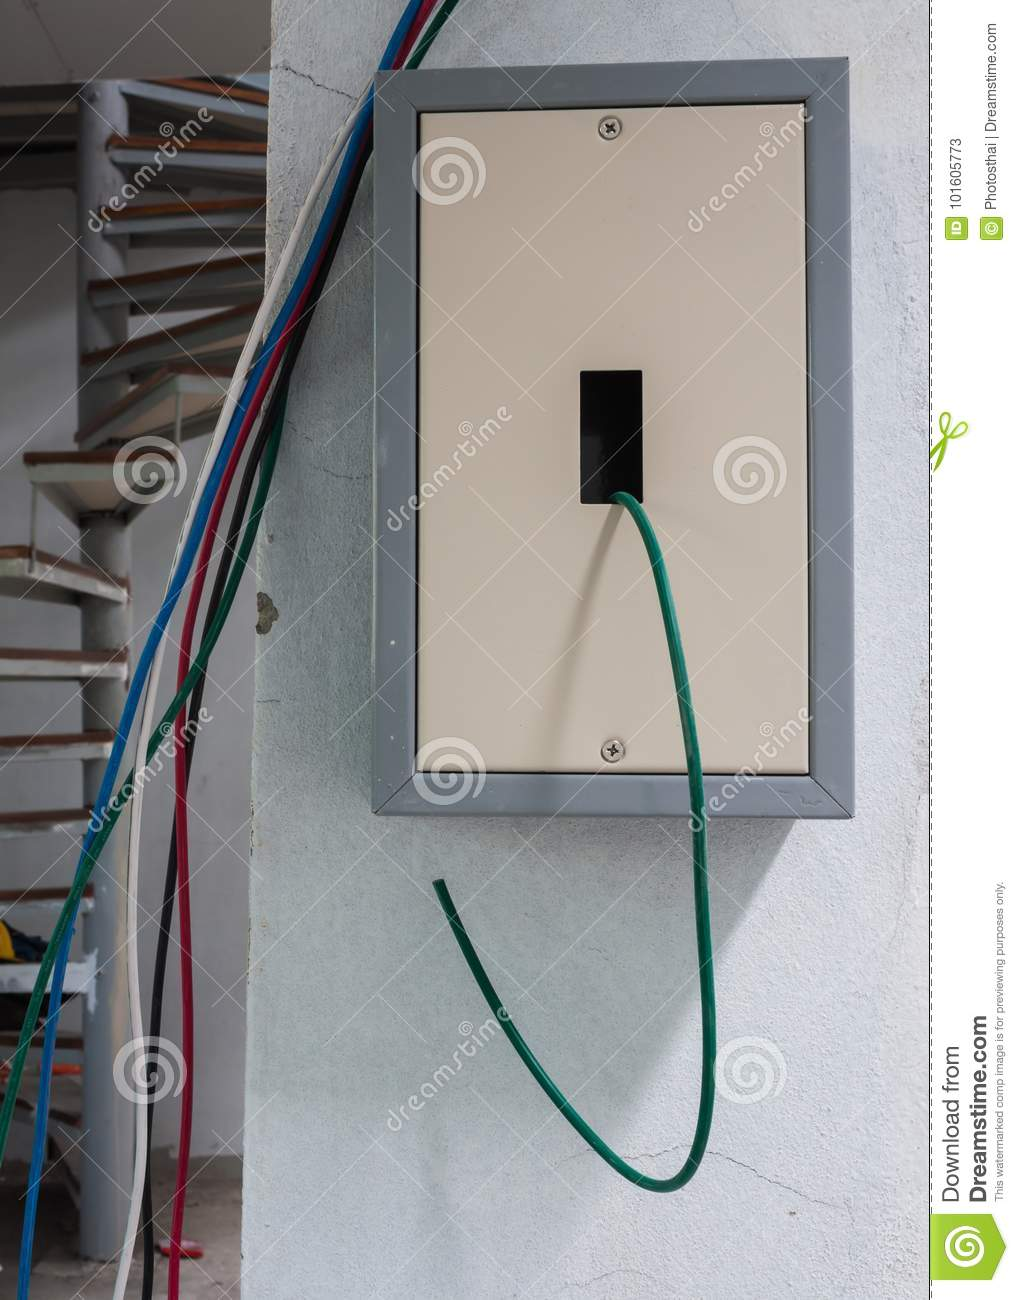 Electric Plug Circuit With Wiring Line Stock Image - Image of ...